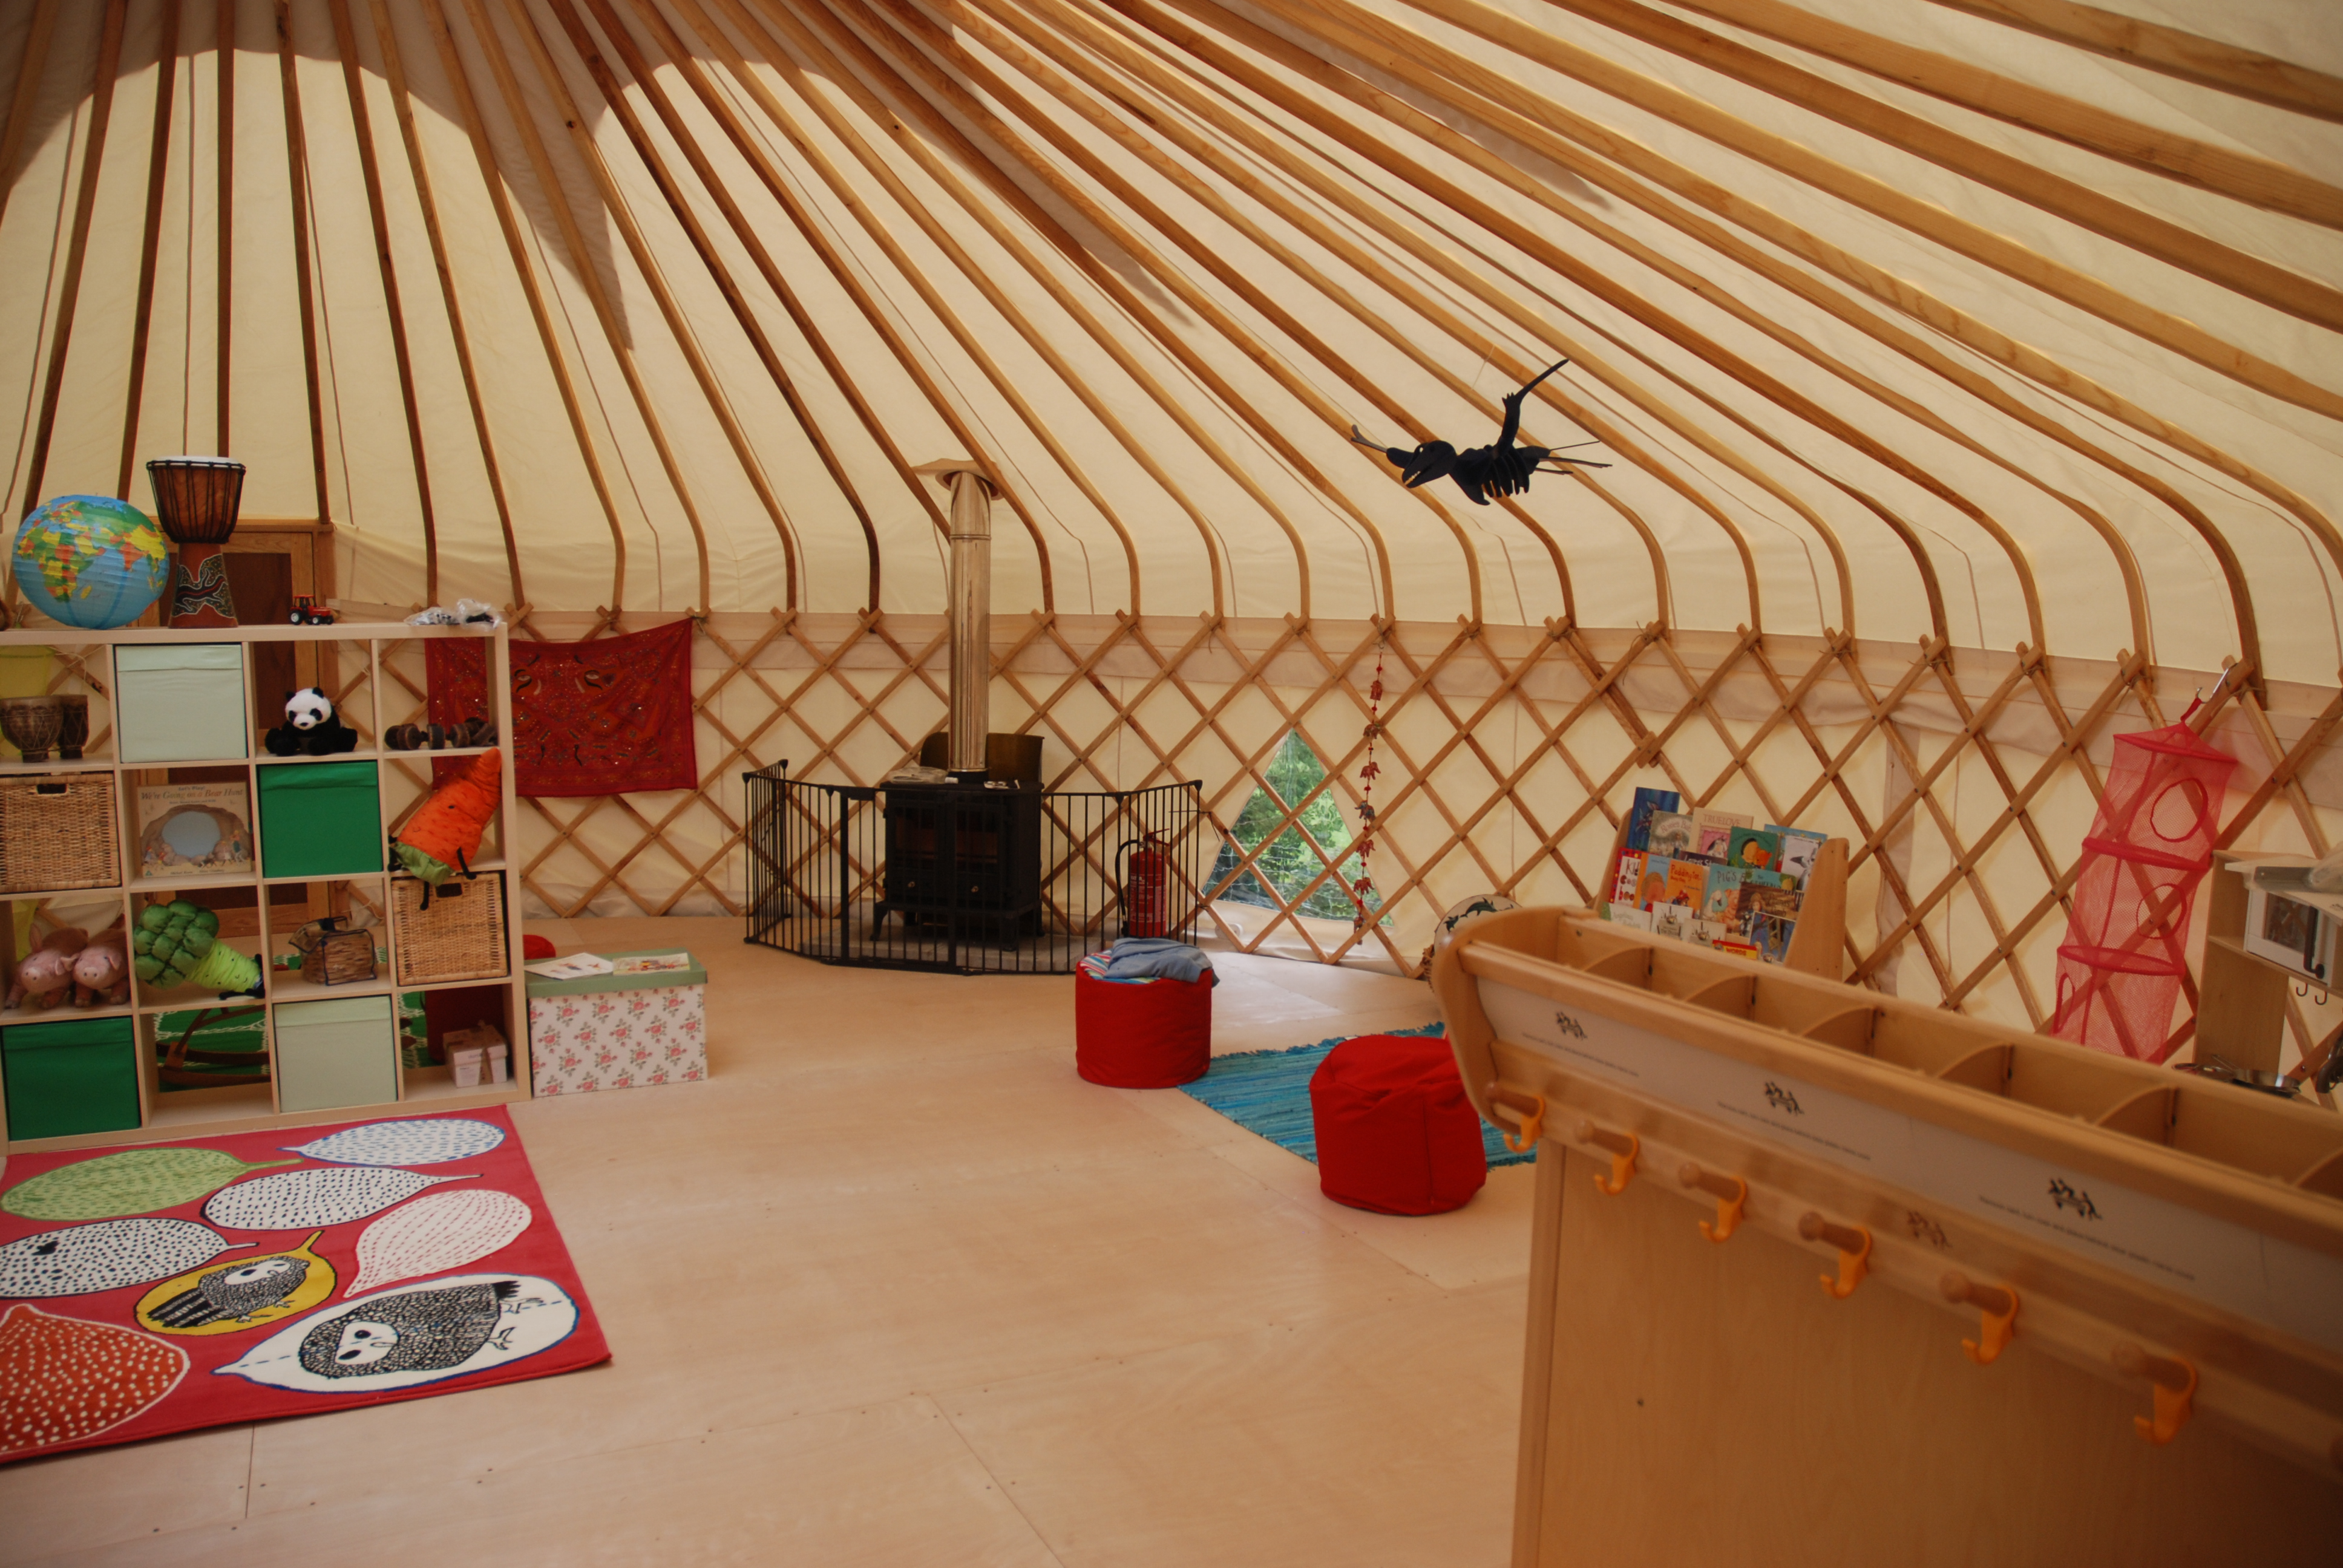 One of our yurt nurseries at Farley (interior)